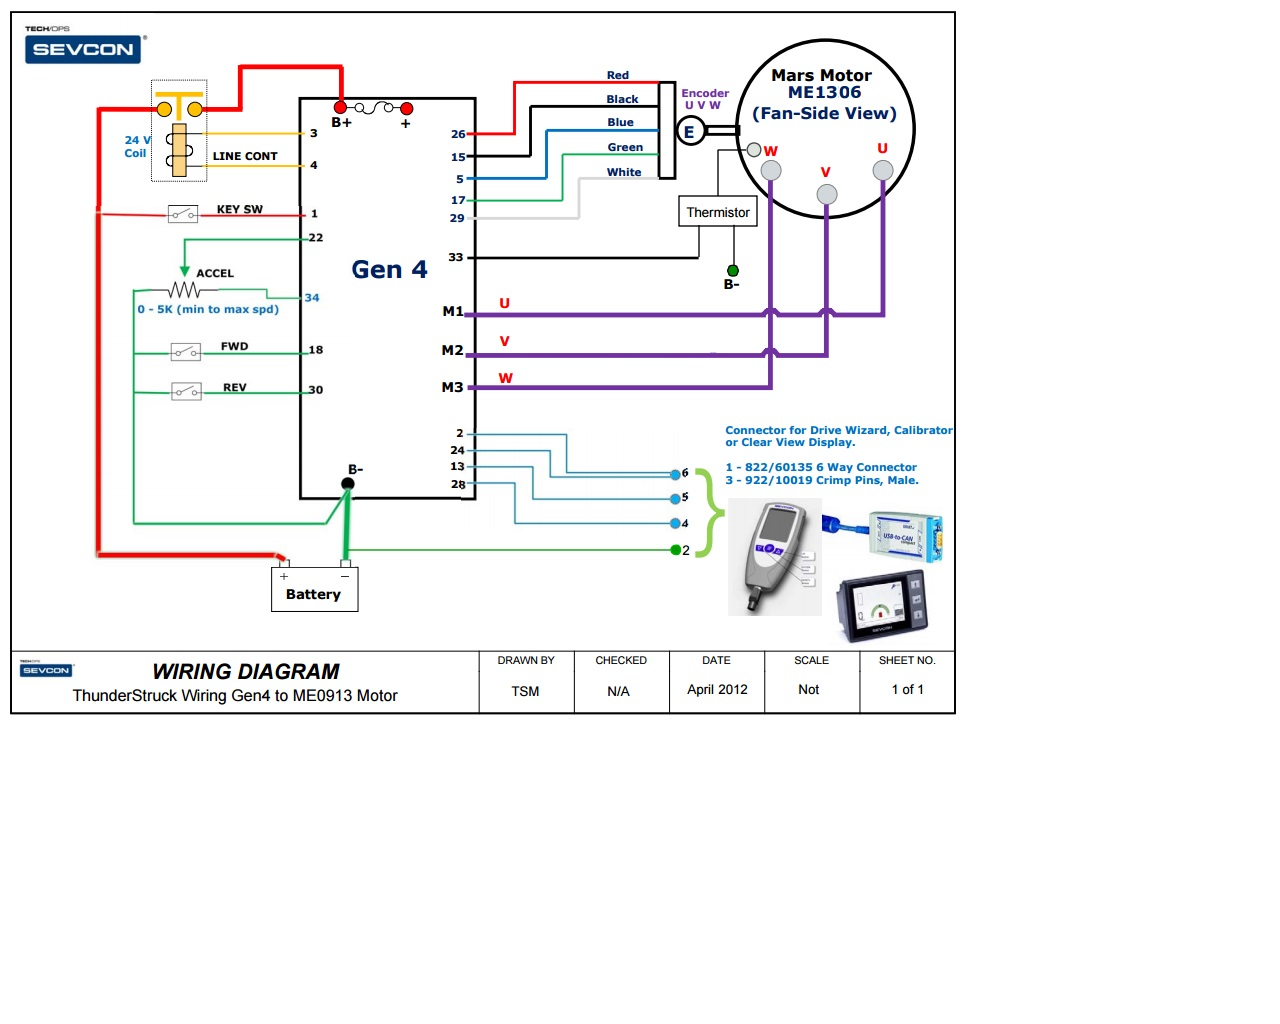 hight resolution of ev wiring diagram ac dc diagram data schemathunderstruck motors manuals u0026 data sheets ev wiring